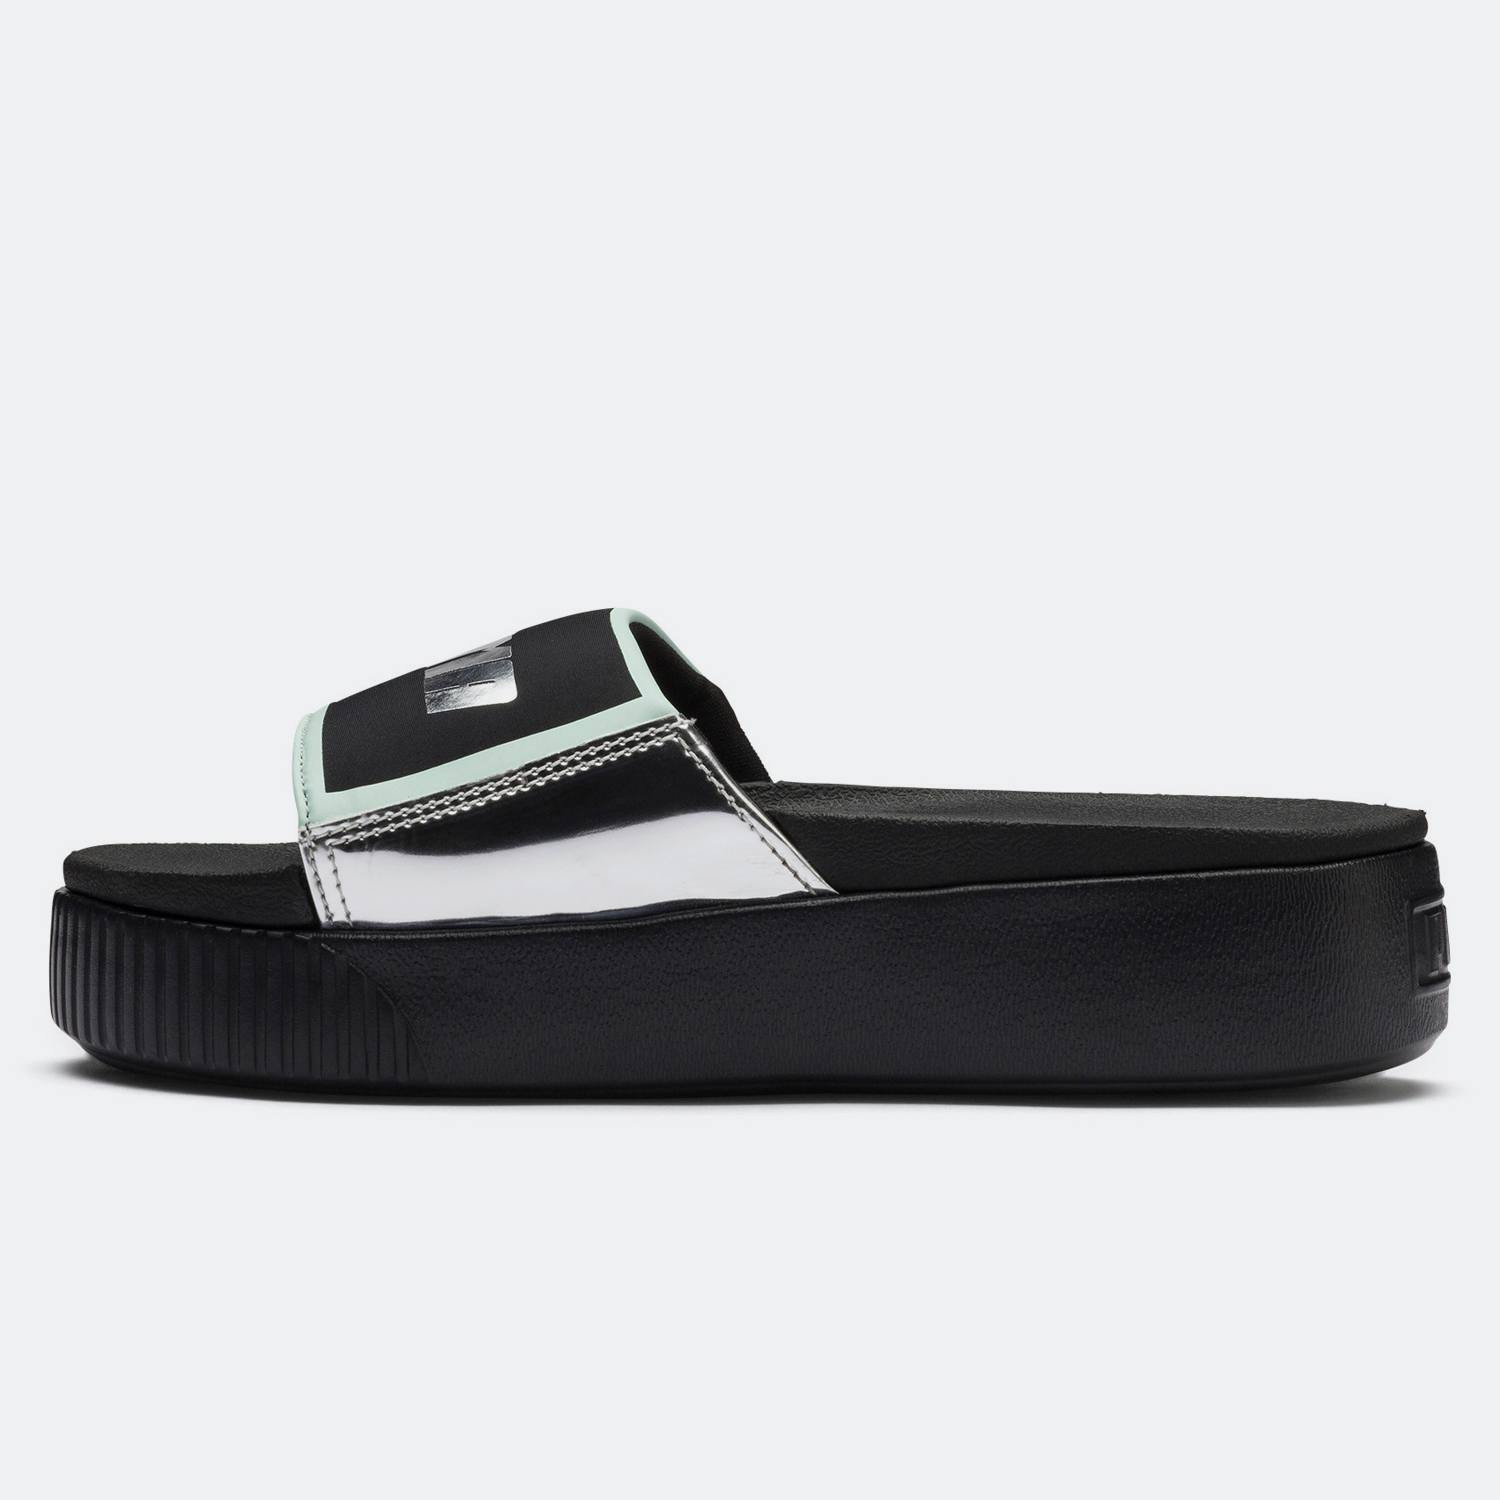 Puma Trailblazer Metallic Platform Slides - Γυναικείες Παντόφλες (9000022022_22499)